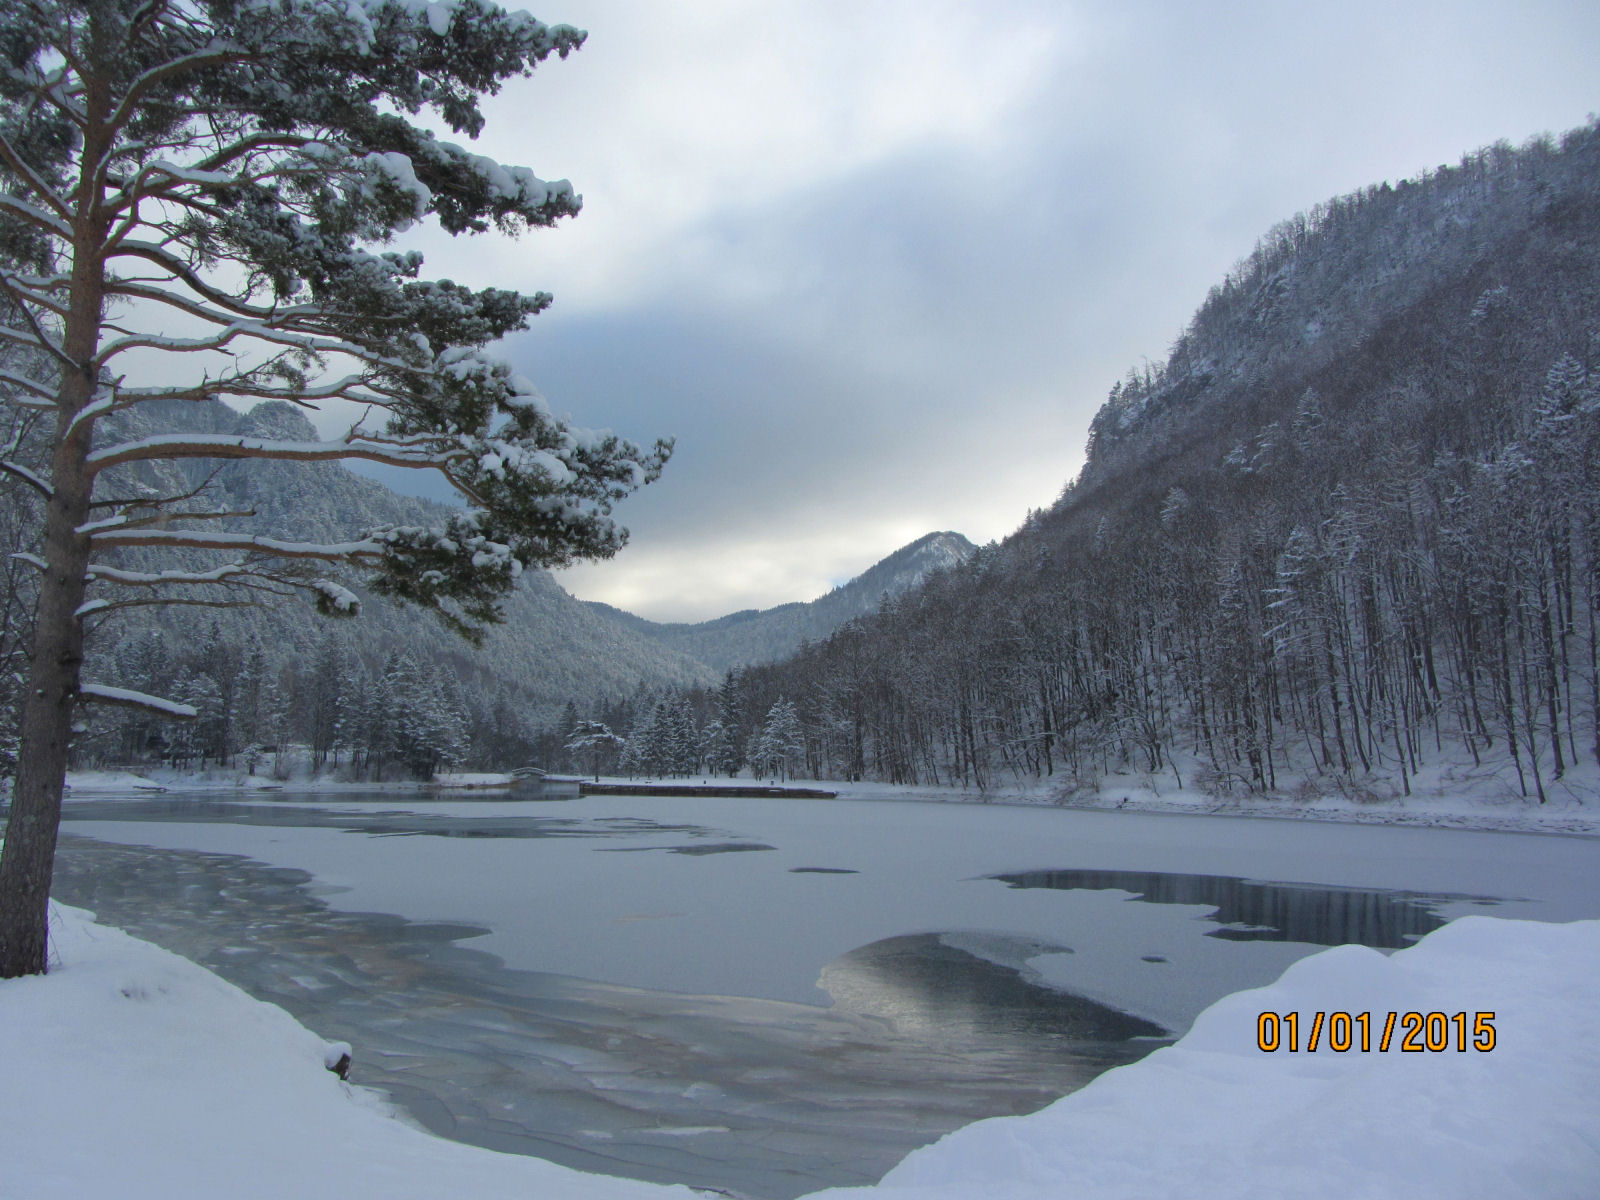 Frozen Zavrsnica reservoir in winter